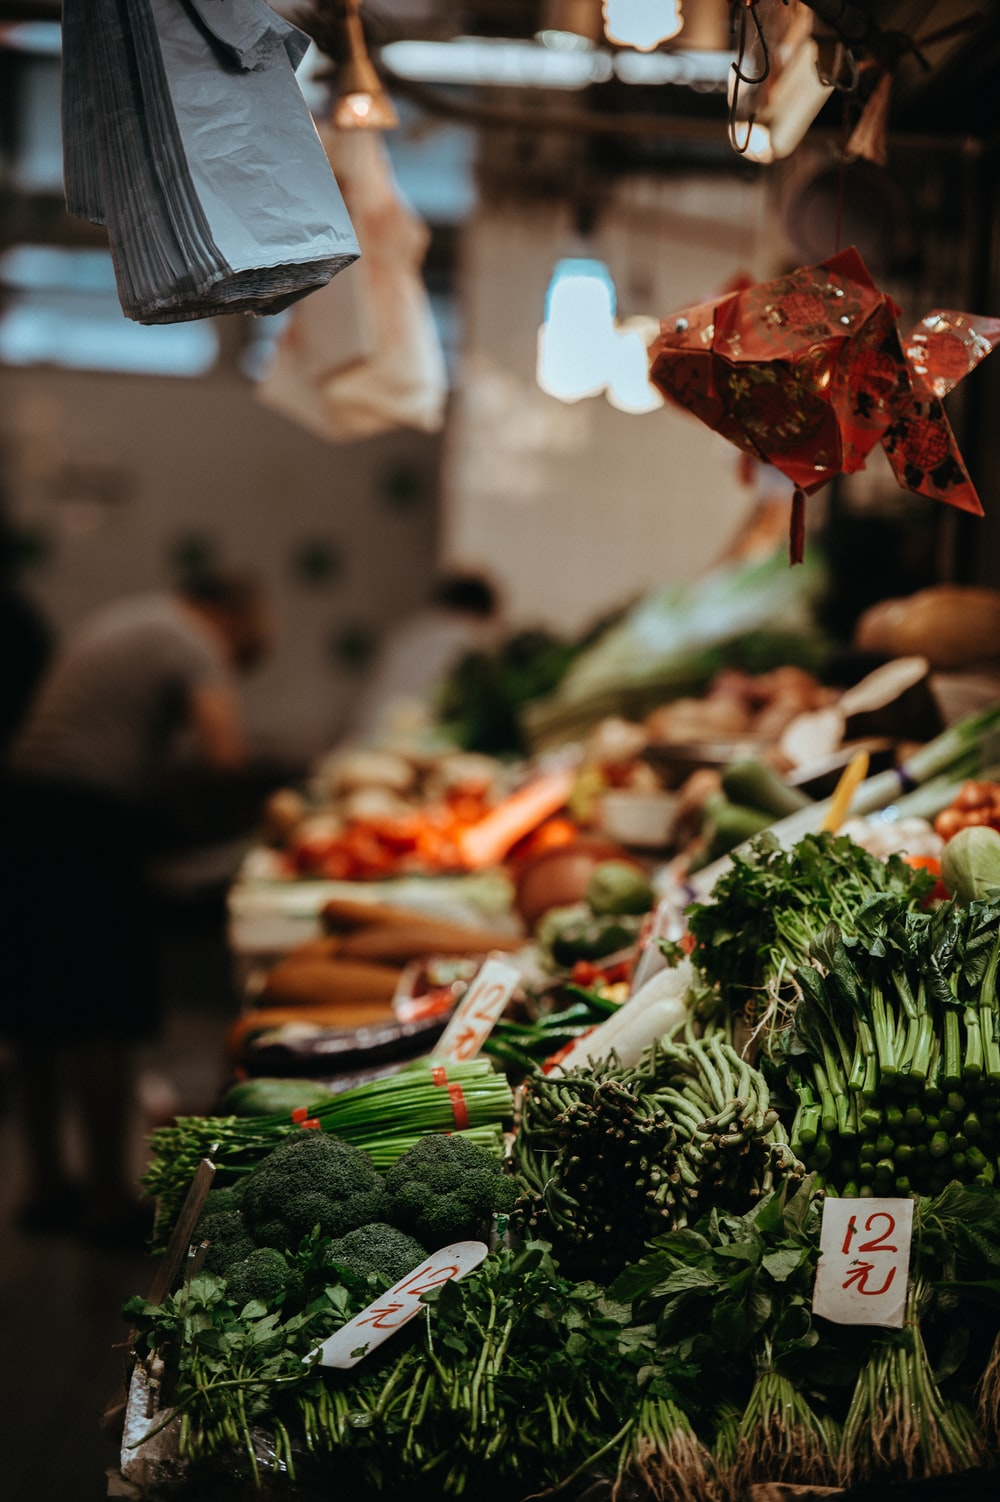 variety of vegetables on stall